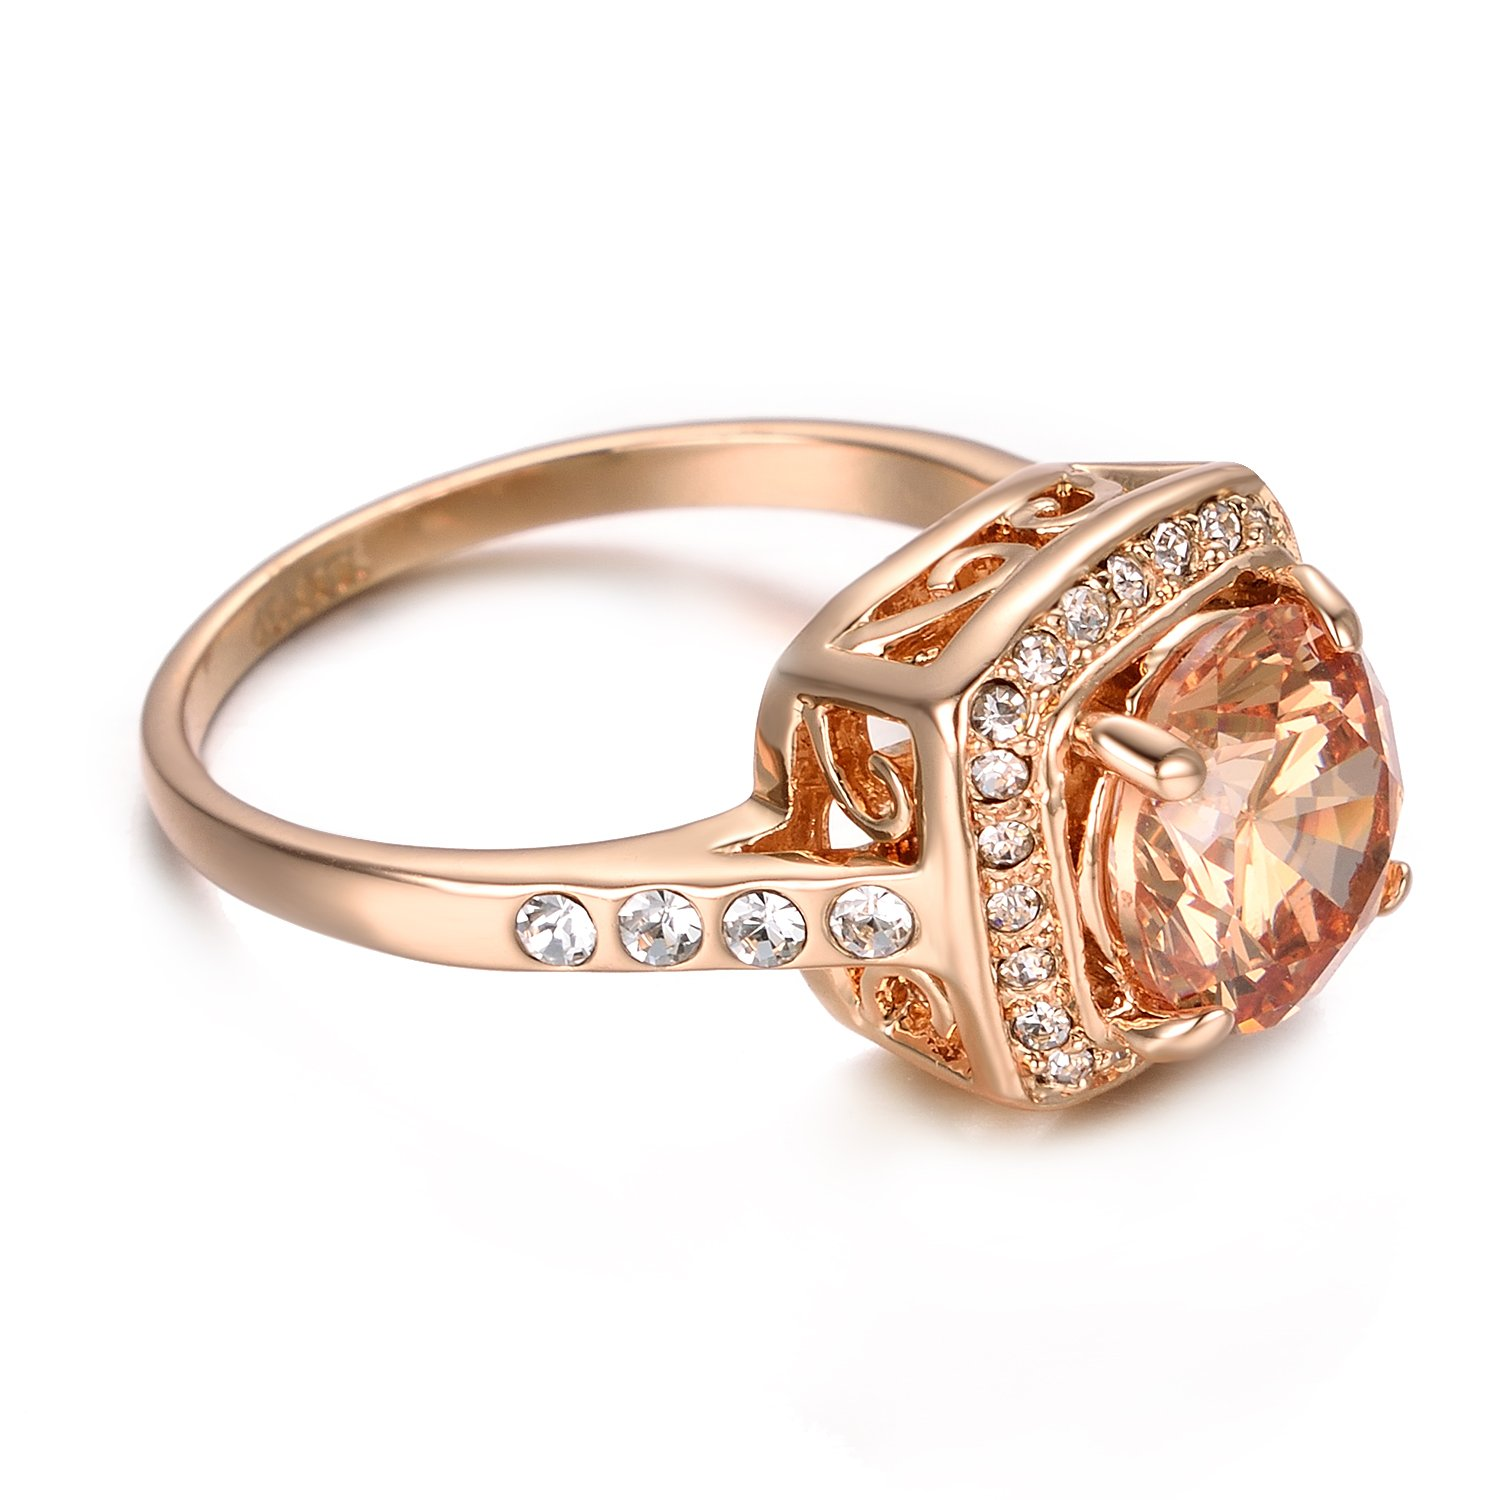 Yoursfs Halo Pink Opal Stone Diamante Rings for Women Party Fashion Jewellery 18ct Rose Gold Plated Prom Dress Statement Ring 4D5YjFCdpB